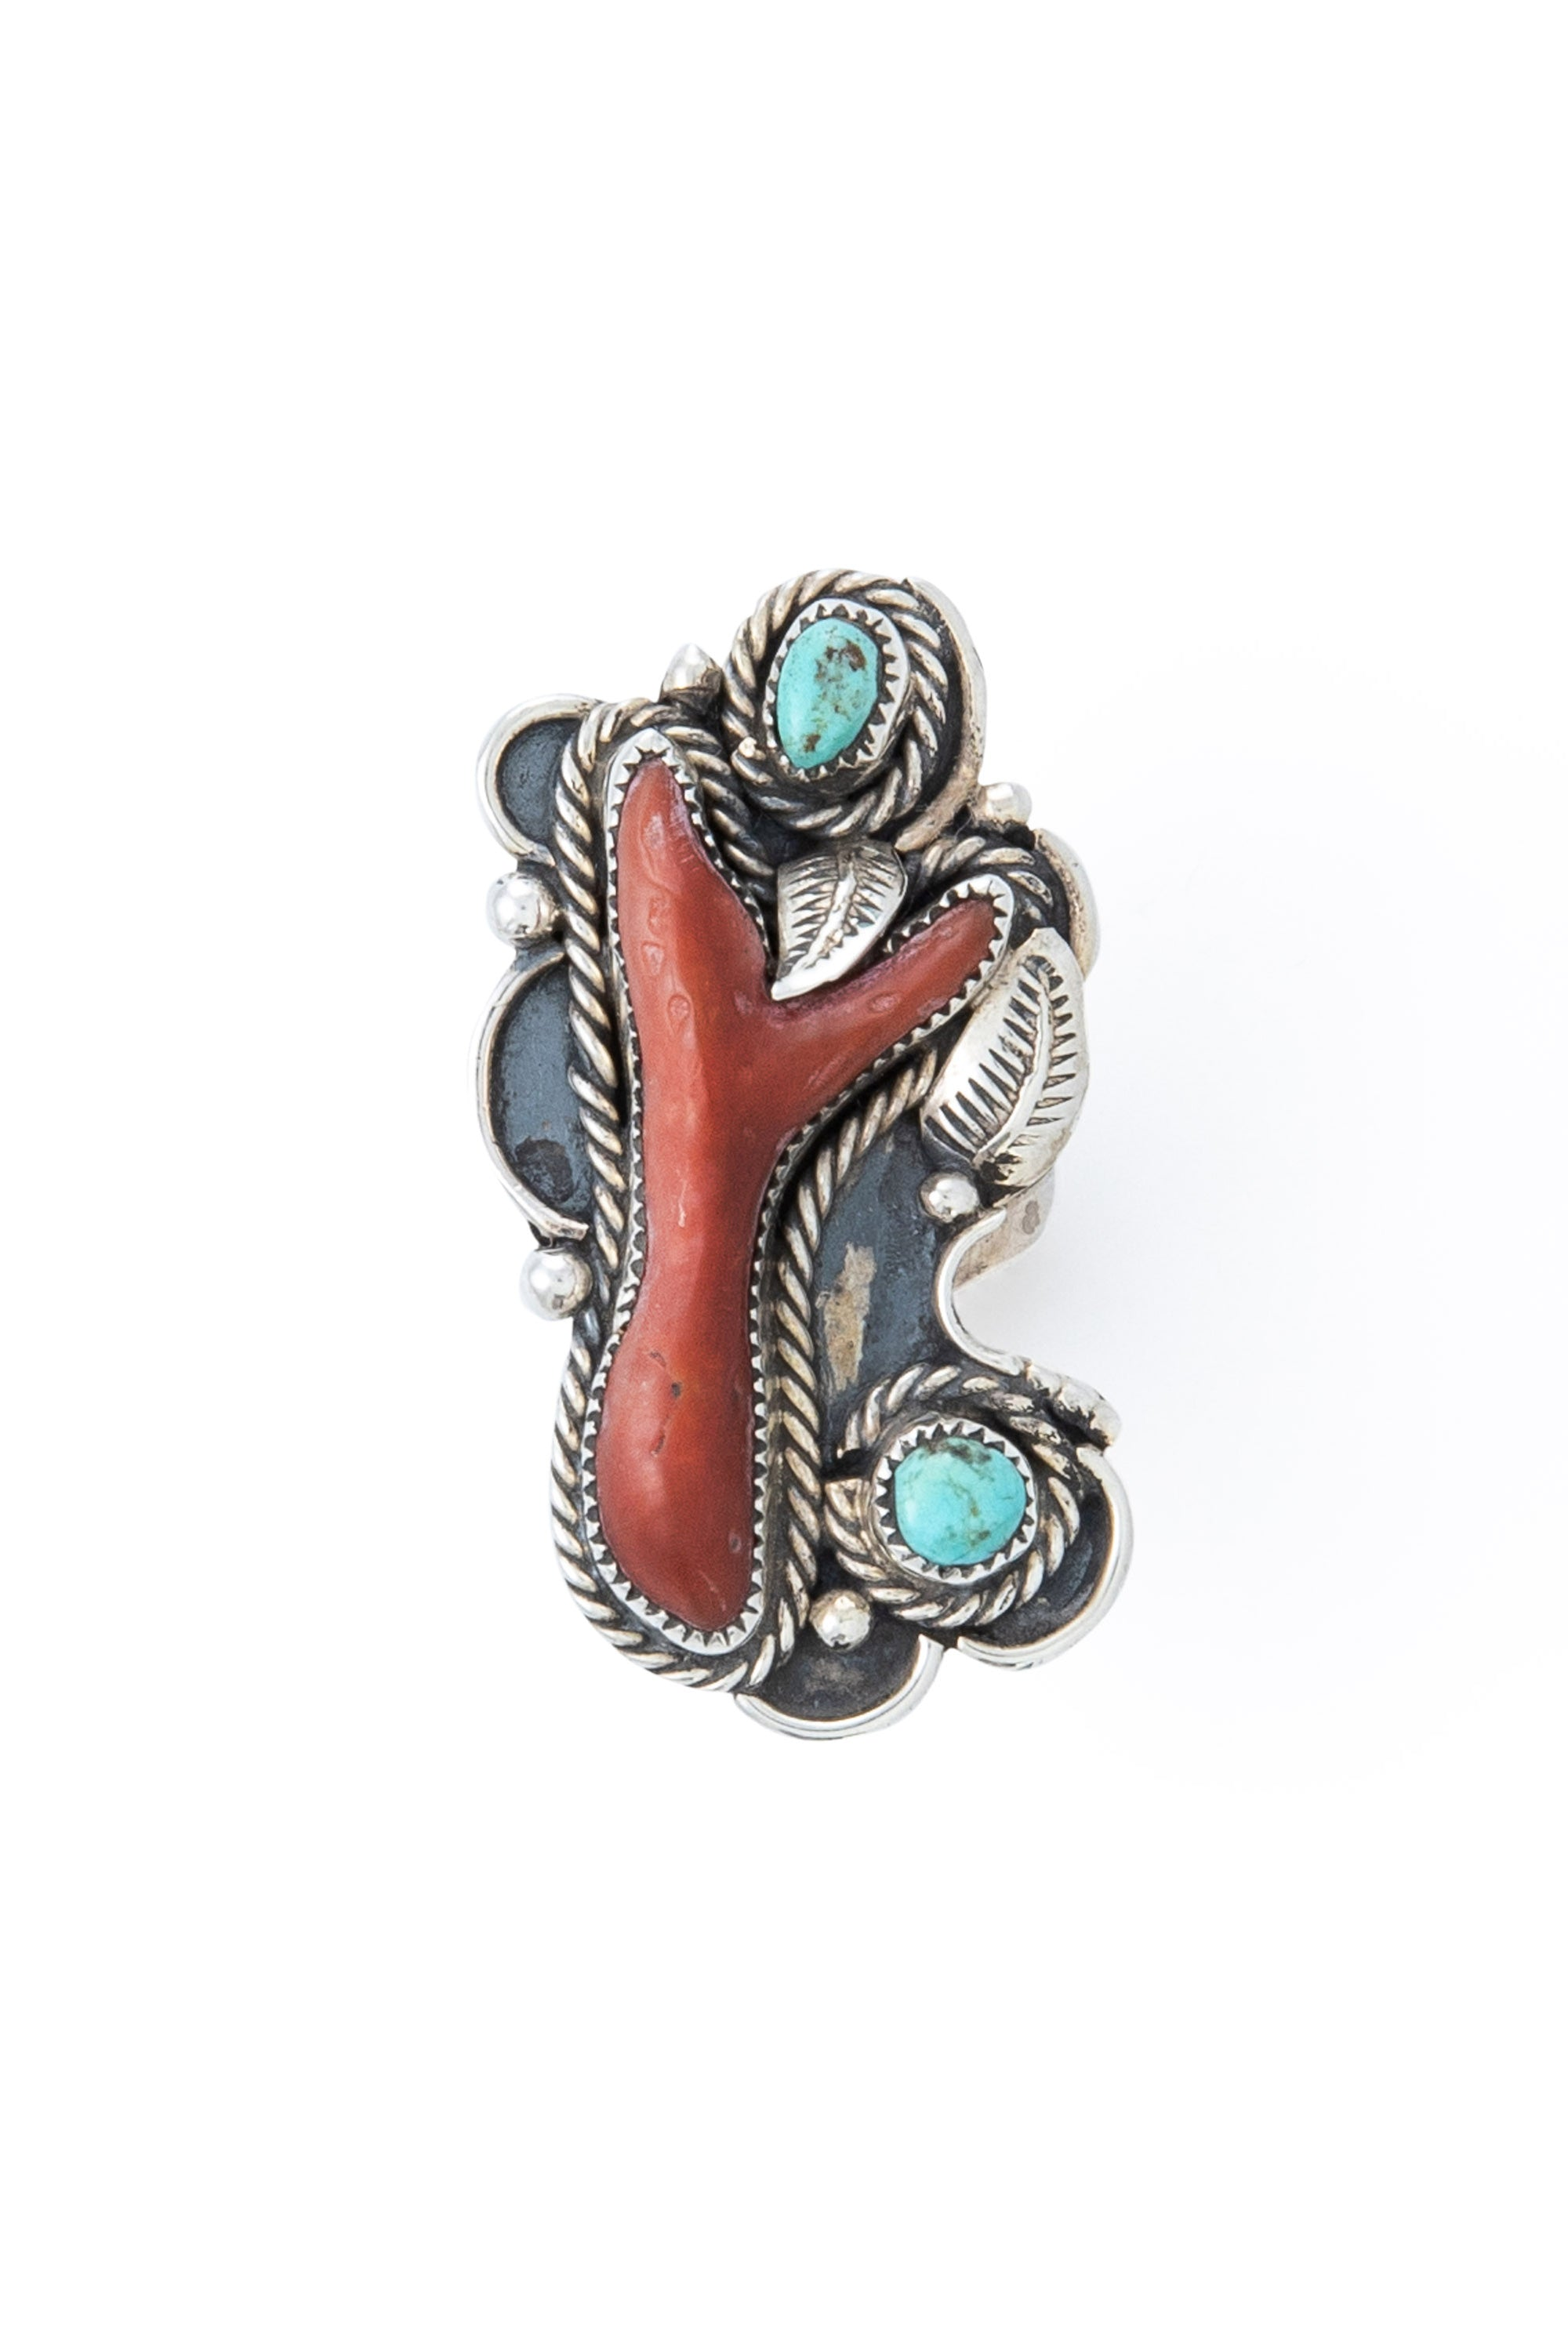 Ring, Turquoise & Coral, Estate, Vintage, 603